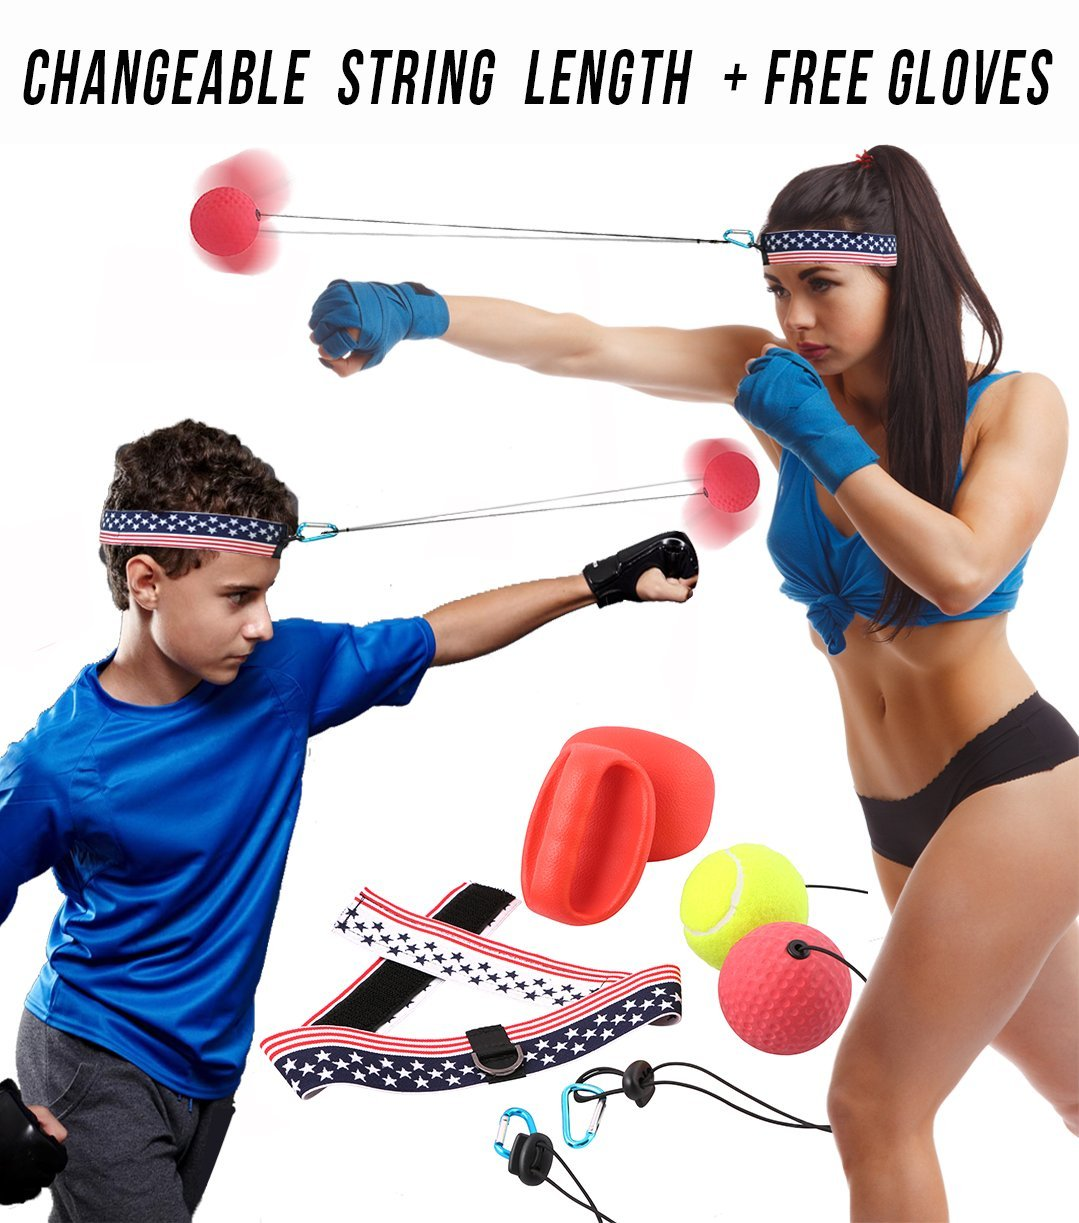 Boxing Reflex Fight Ball - Improves Focus, Reaction Time, Hand Eye Coordination - Birthday Gift for Kids, Boys, Girls, Men and Women - Fun Speed Training Sport Indoor Home Equipment Kit Game Activity by Caravan BD